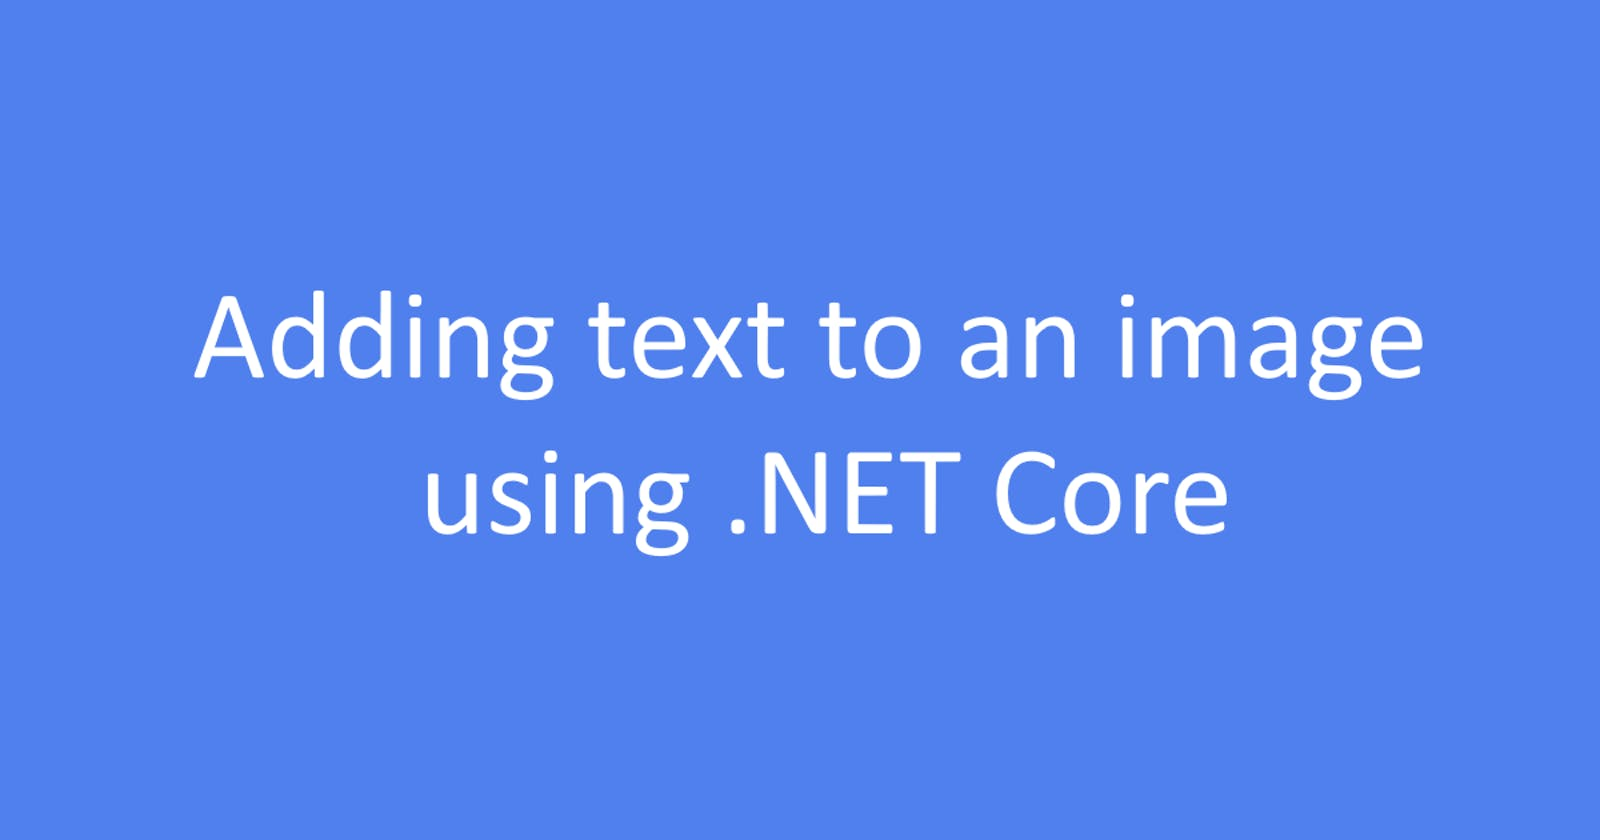 Adding text to an image using .NET Core